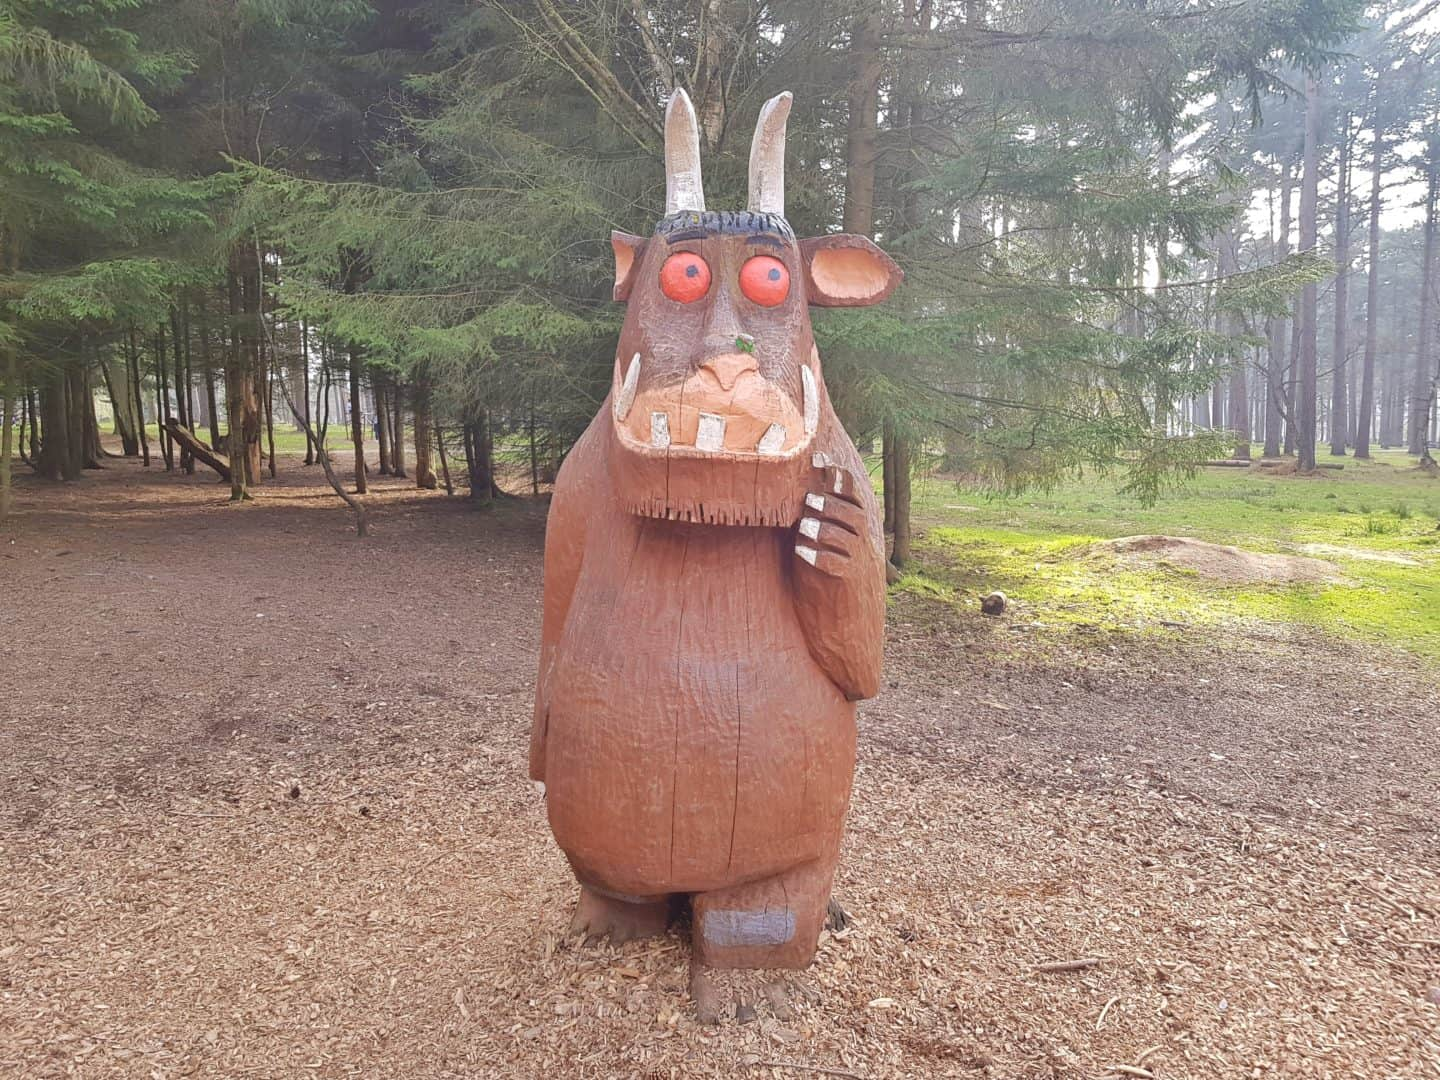 Gruffalo in Cannock Chase Forest Staffordshire West Midlands